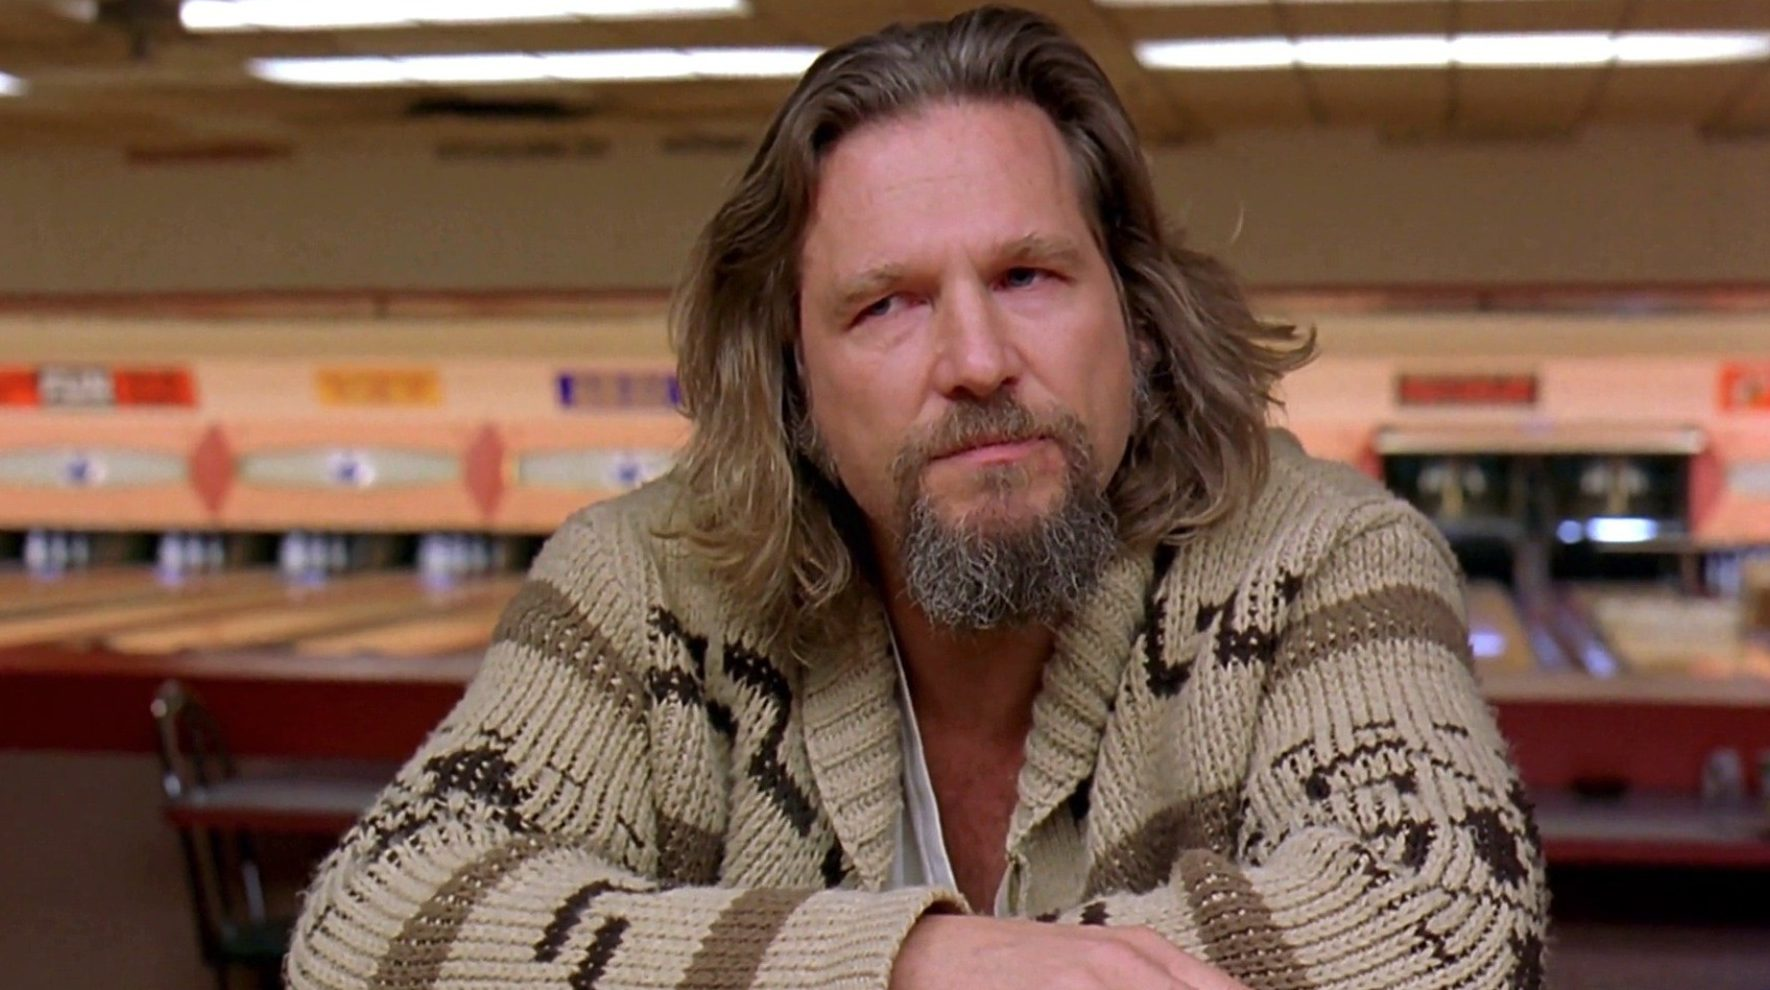 The Big Lebowski' Turns 20. Why Are People Still Obsessed With It ...